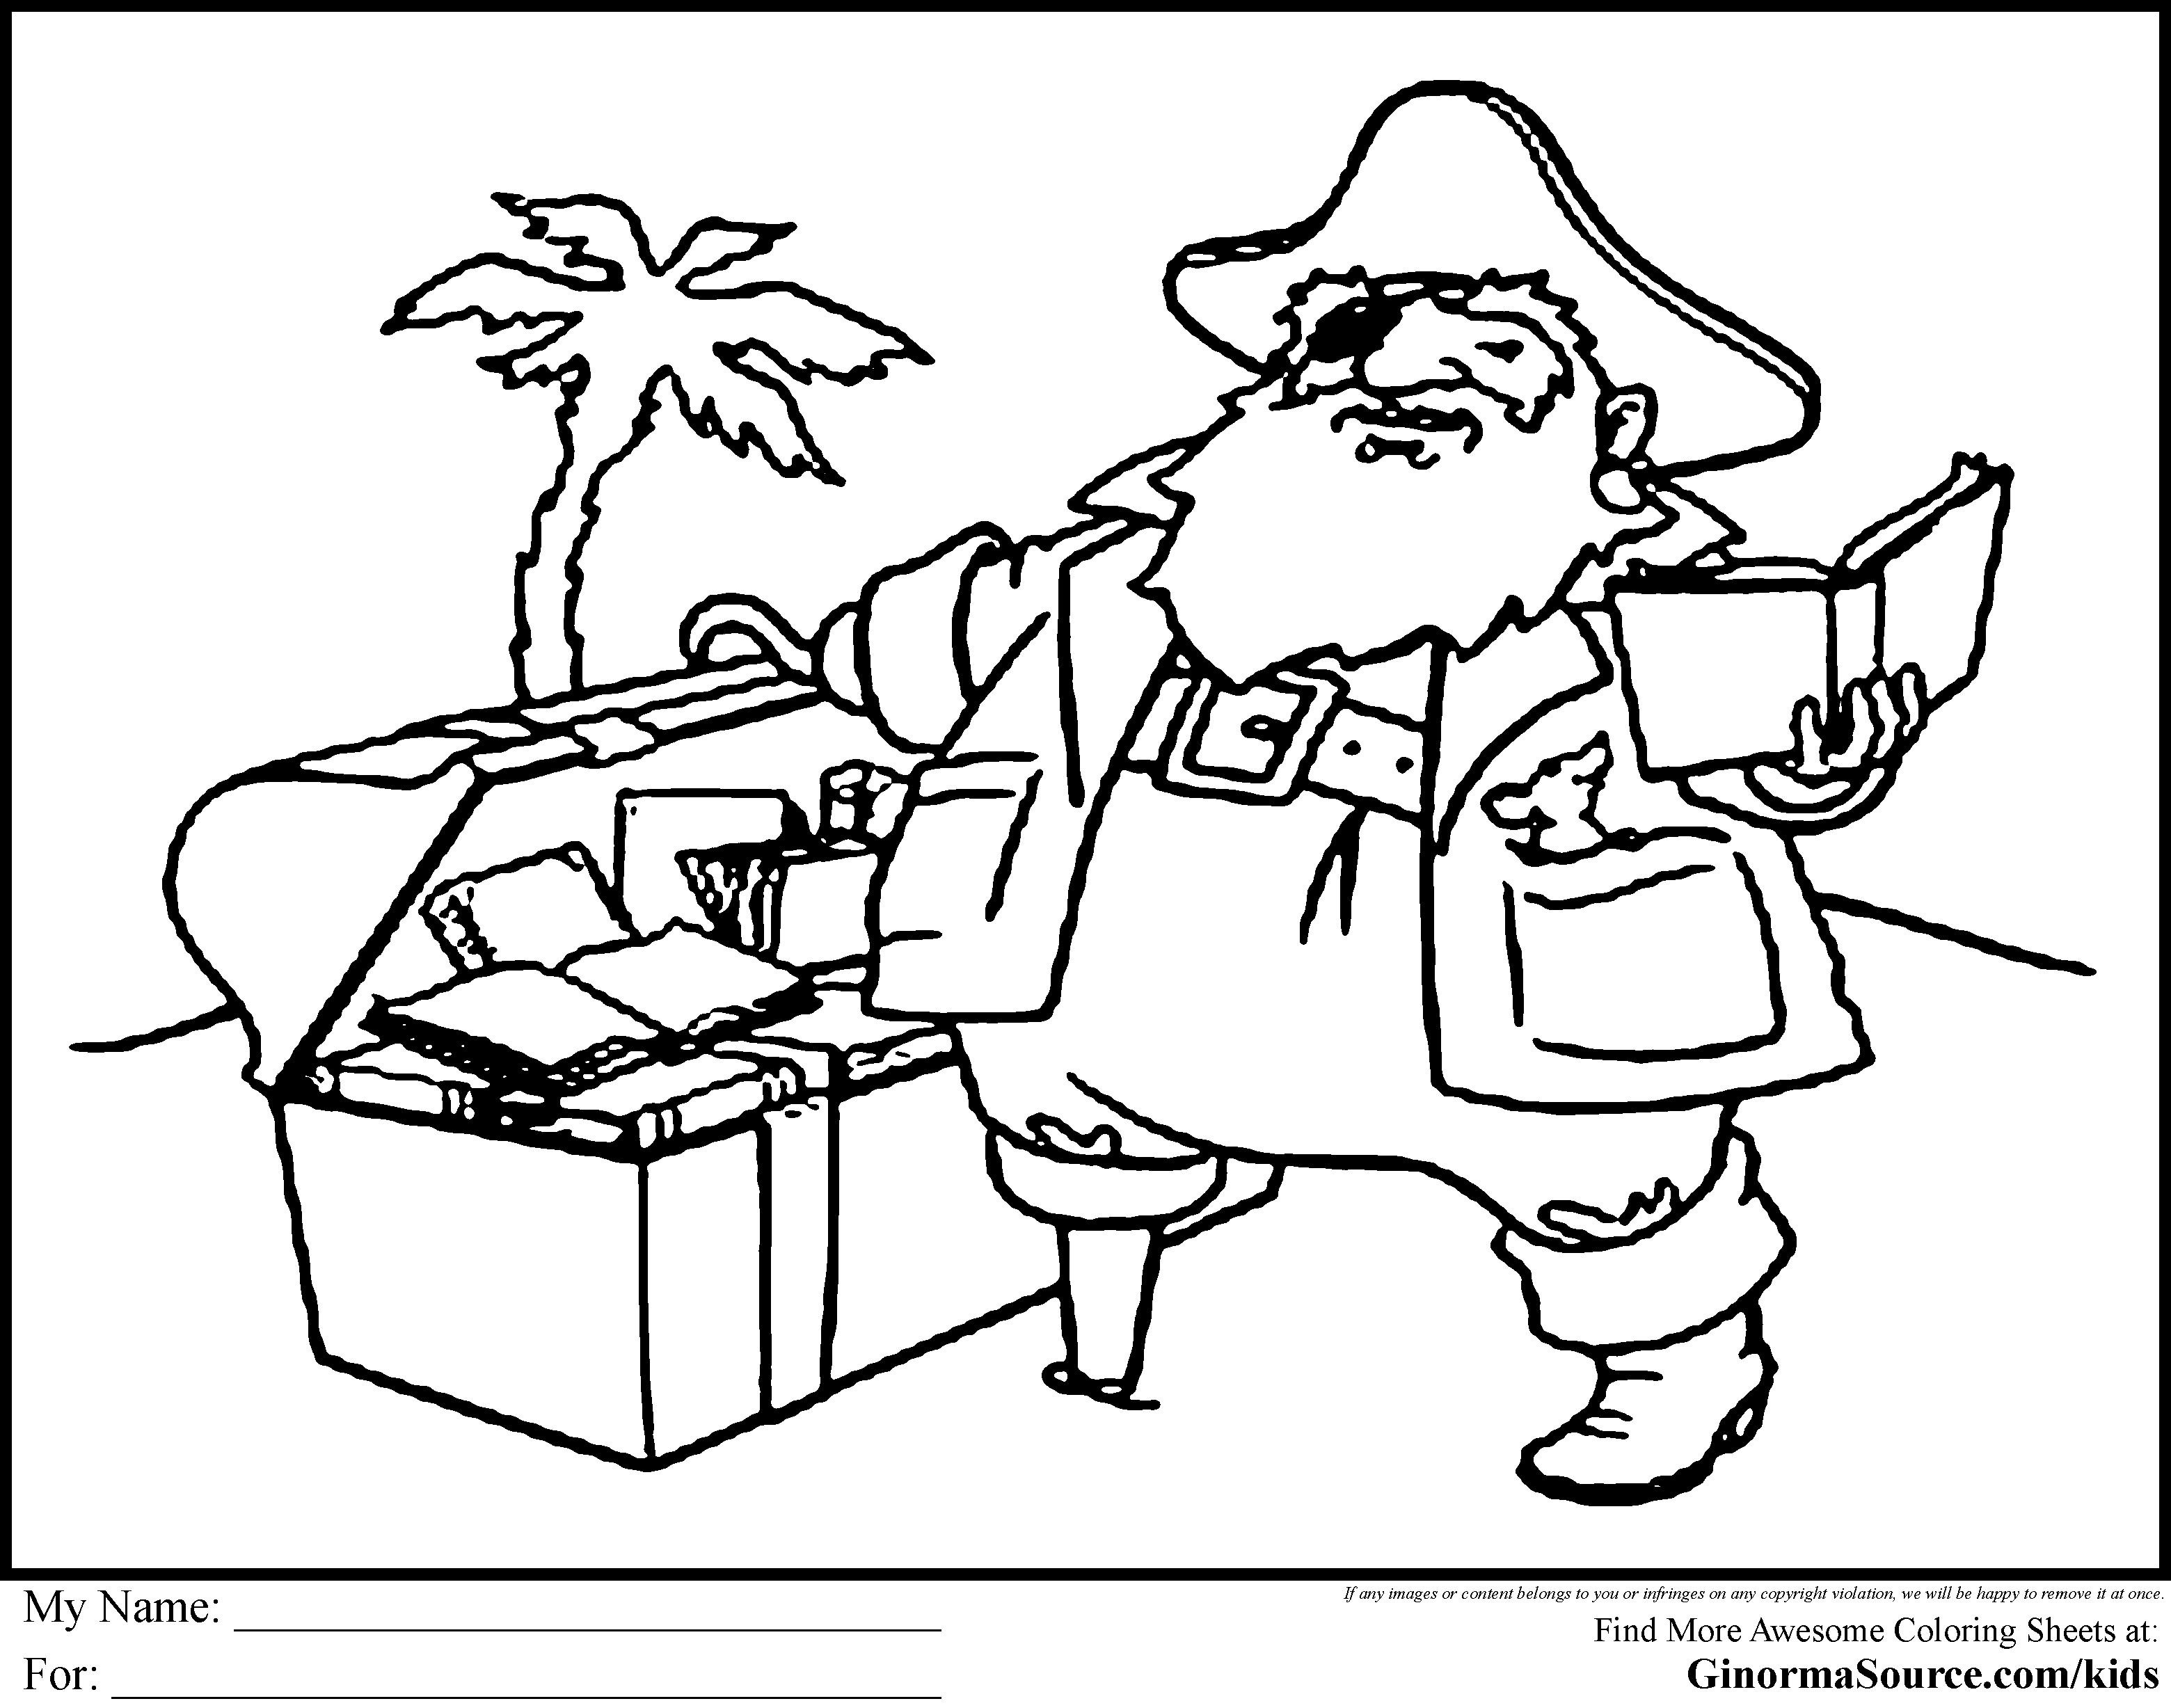 Pirate coloring pages to download and print for free for Pirate coloring pages for preschool